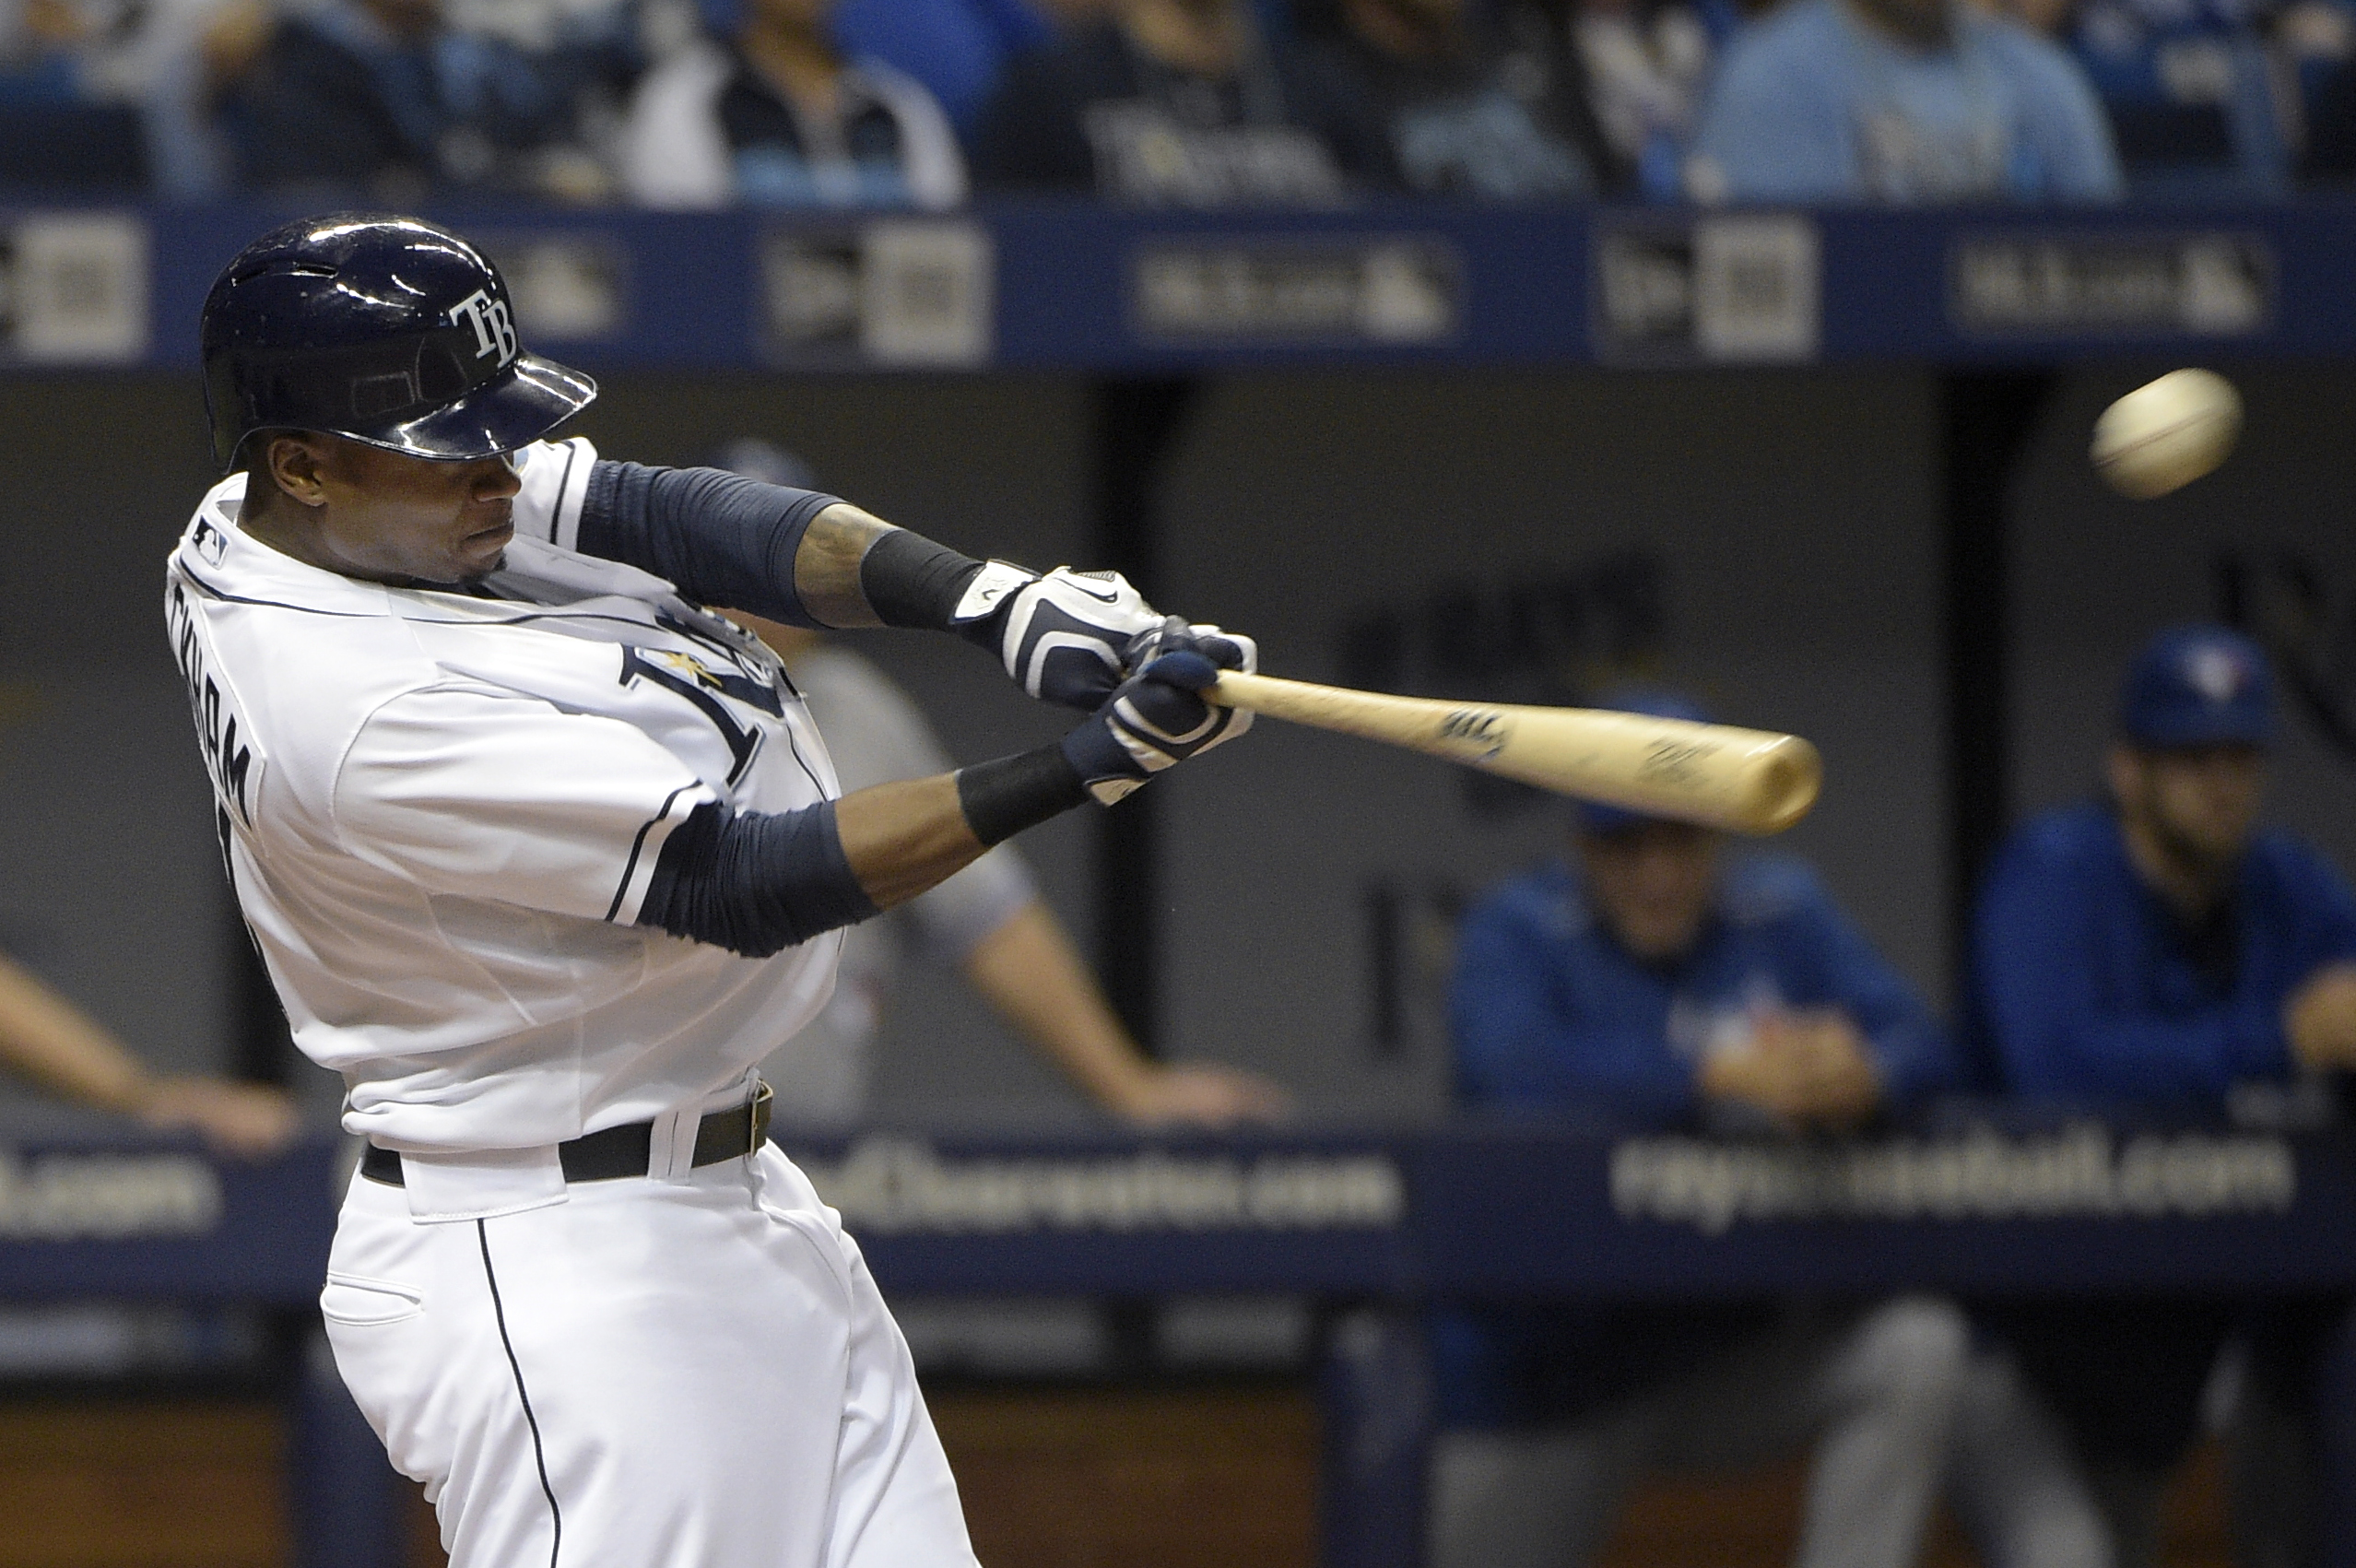 Tampa Bay Rays' Tim Beckham hits a two-RBI double during the eighth inning of a baseball game against the Toronto Blue Jays in St. Petersburg, Fla., Saturday, April 25, 2015. The Rays won 4-2.(AP Photo/Phelan M. Ebenhack)